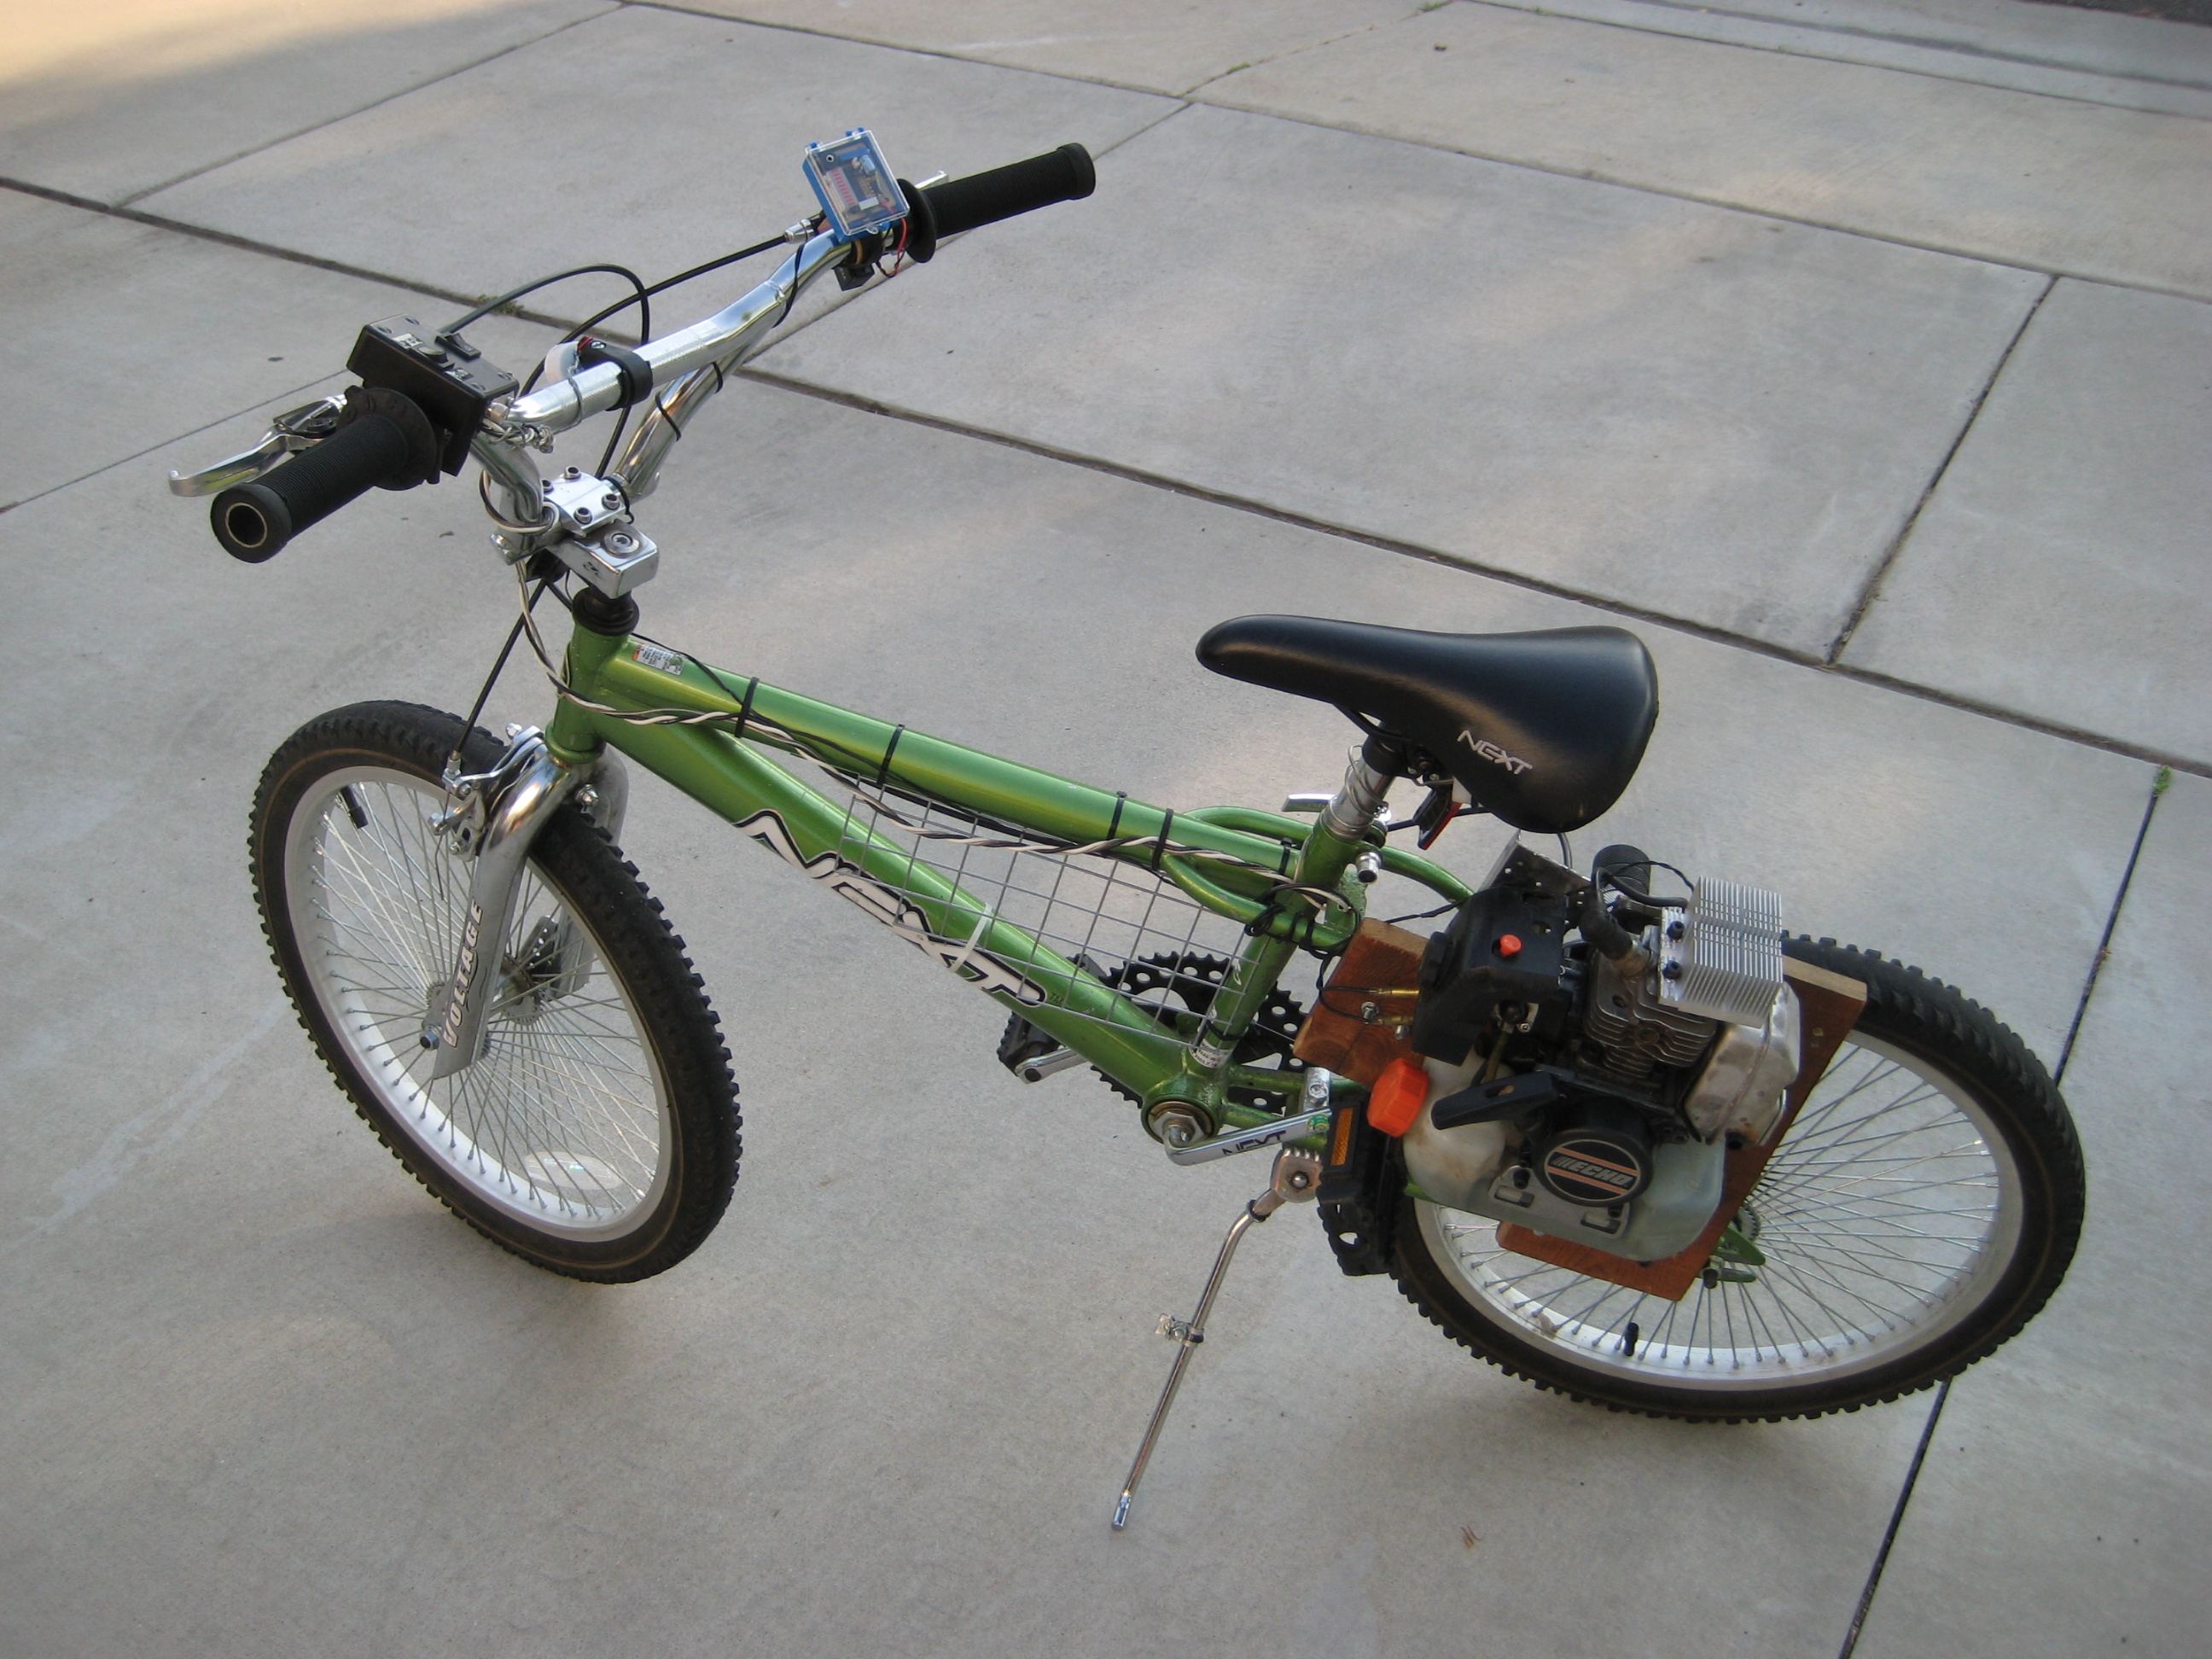 Picture of Weed Whacker-Powered Bicycle